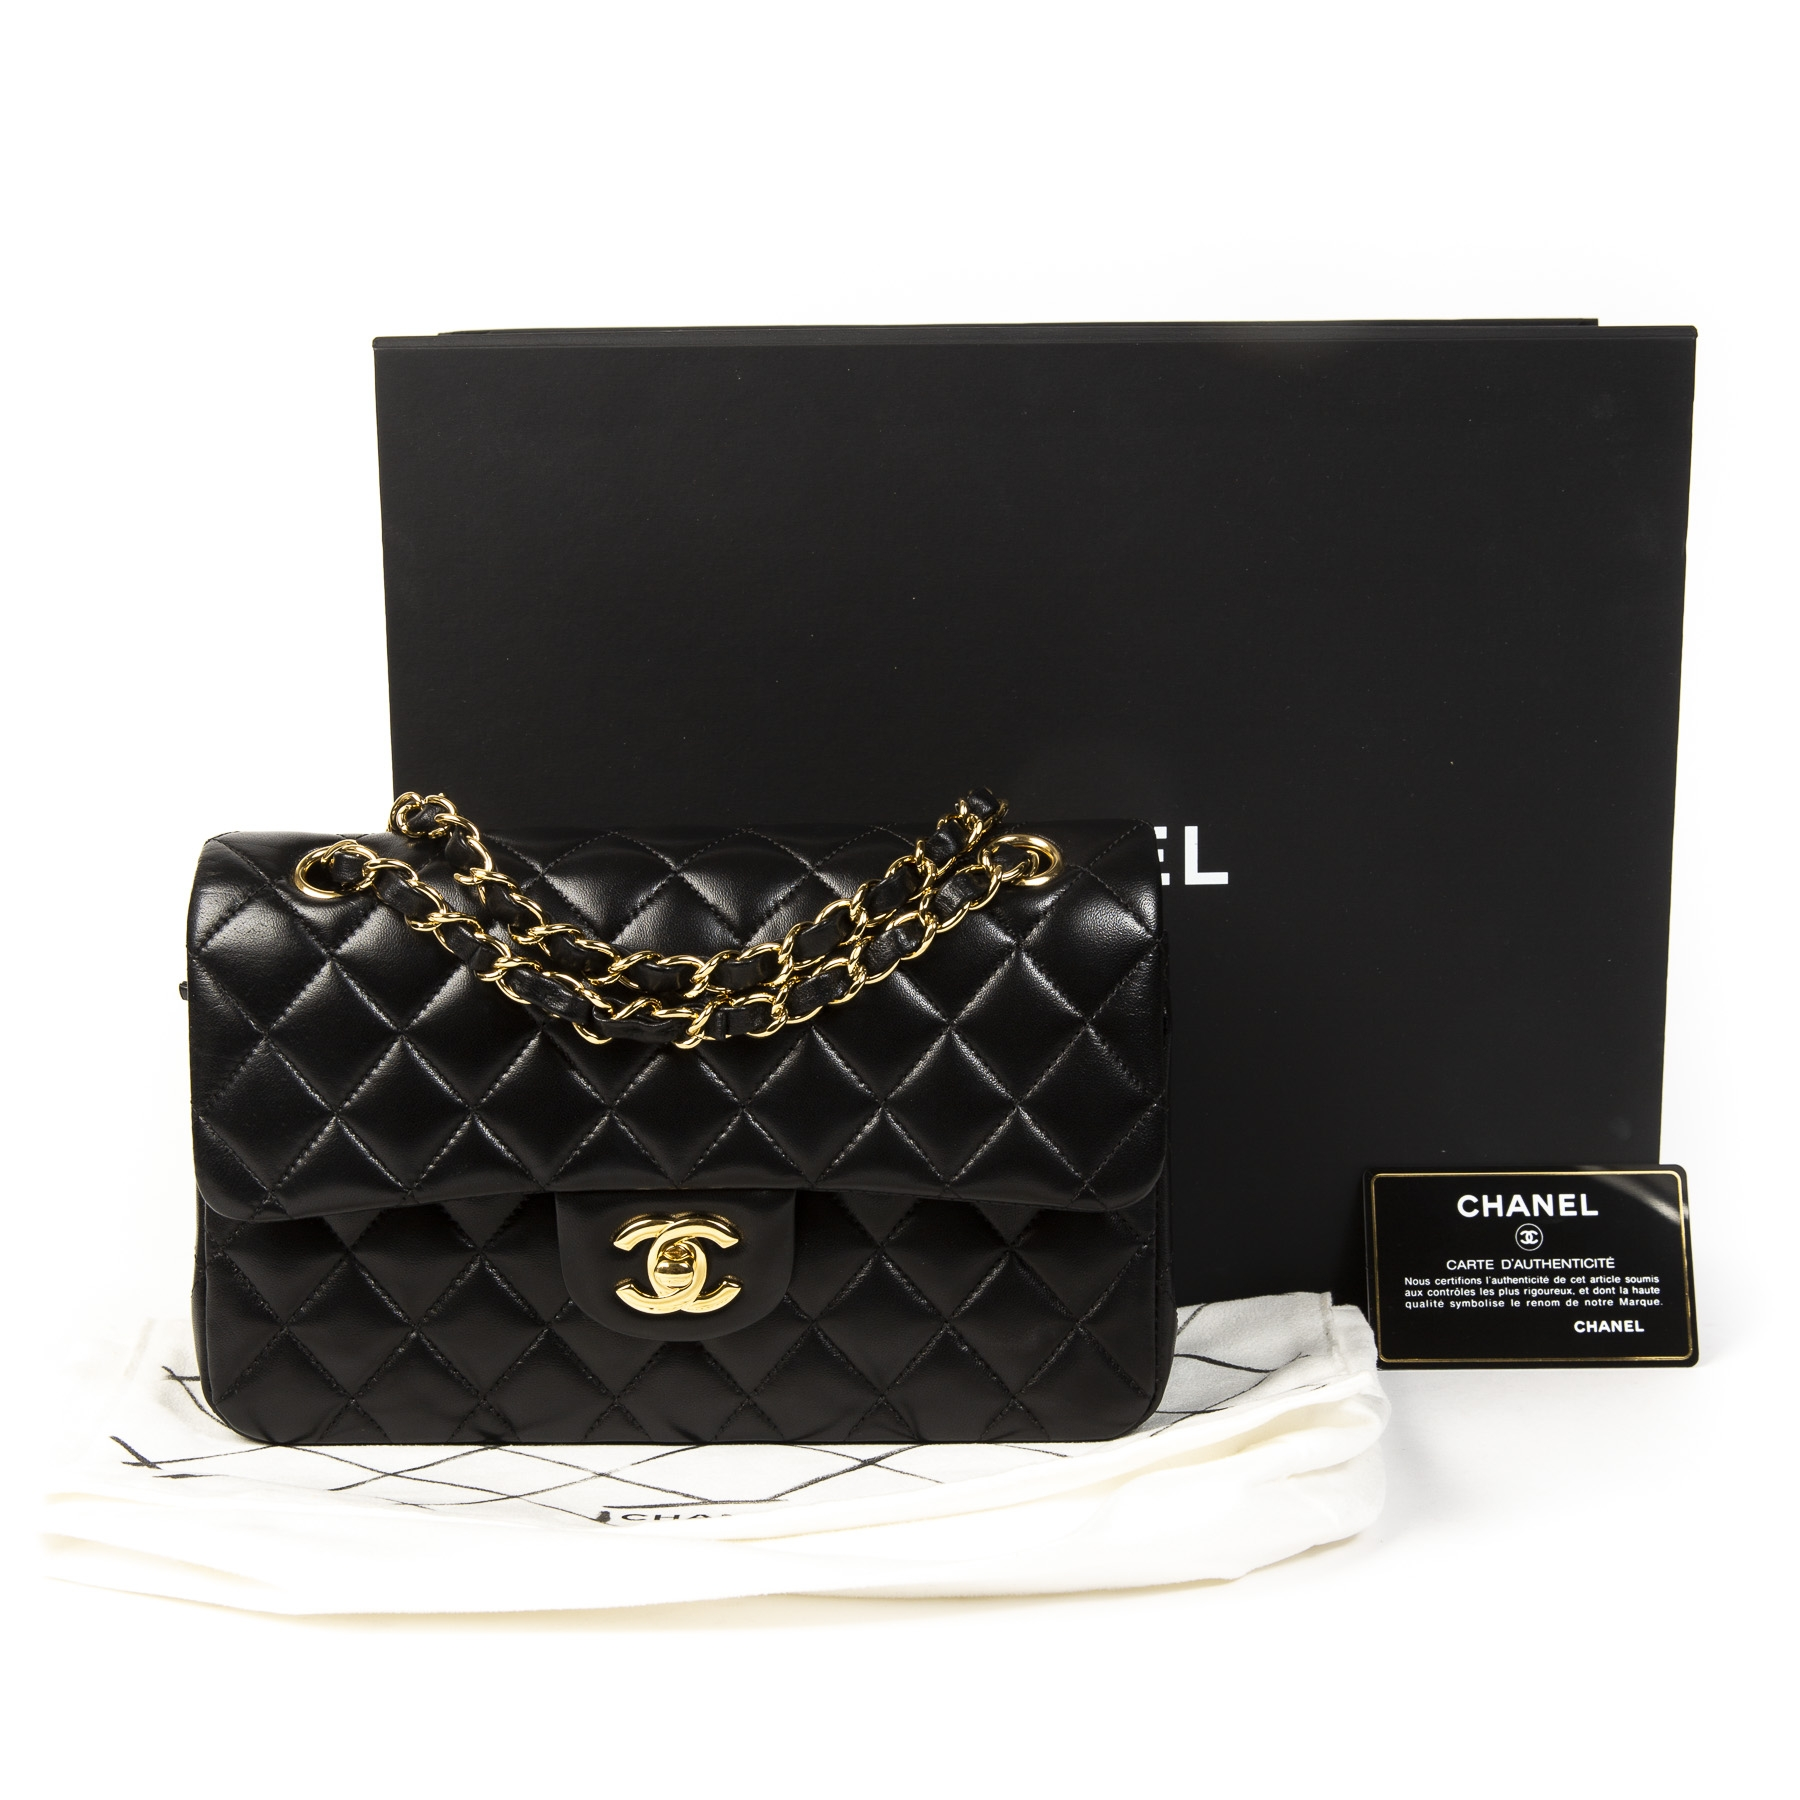 8417a37eb ... Chanel Small Black Classic Flap Bag GHW. Buy authentic secondhand chanel  bag online at labellov